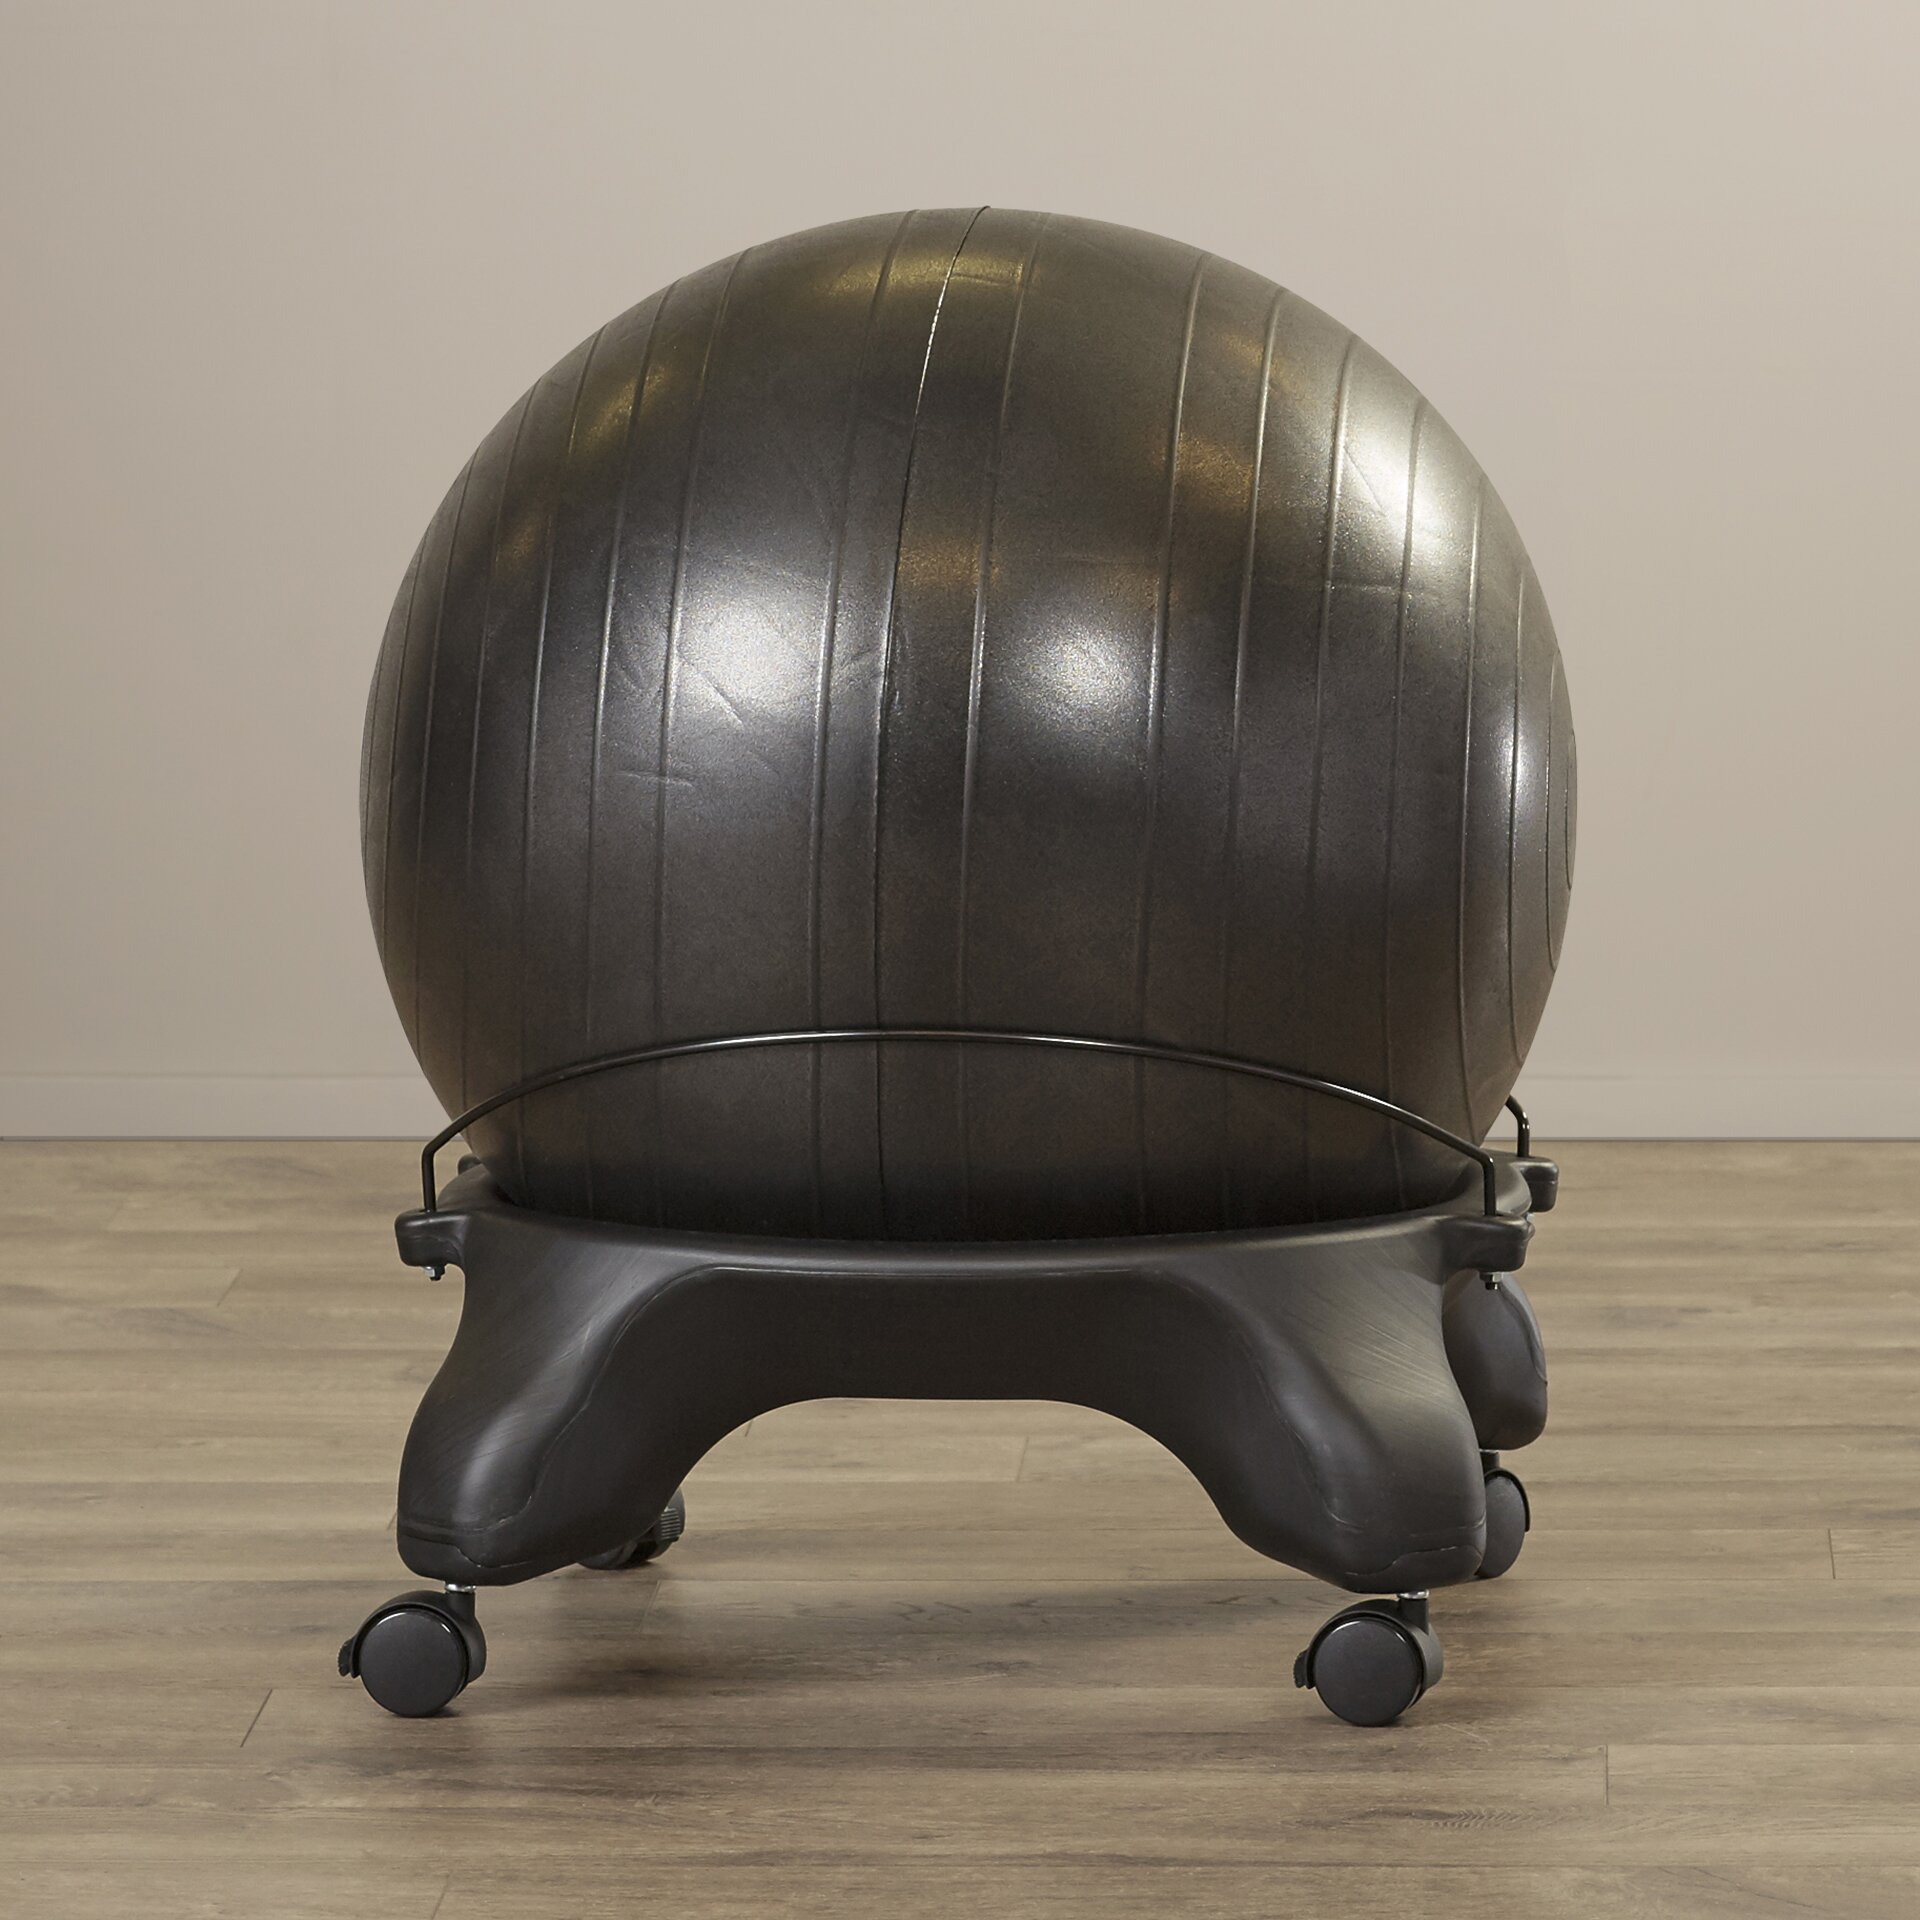 Symple Stuff Exercise Ball Chair & Reviews